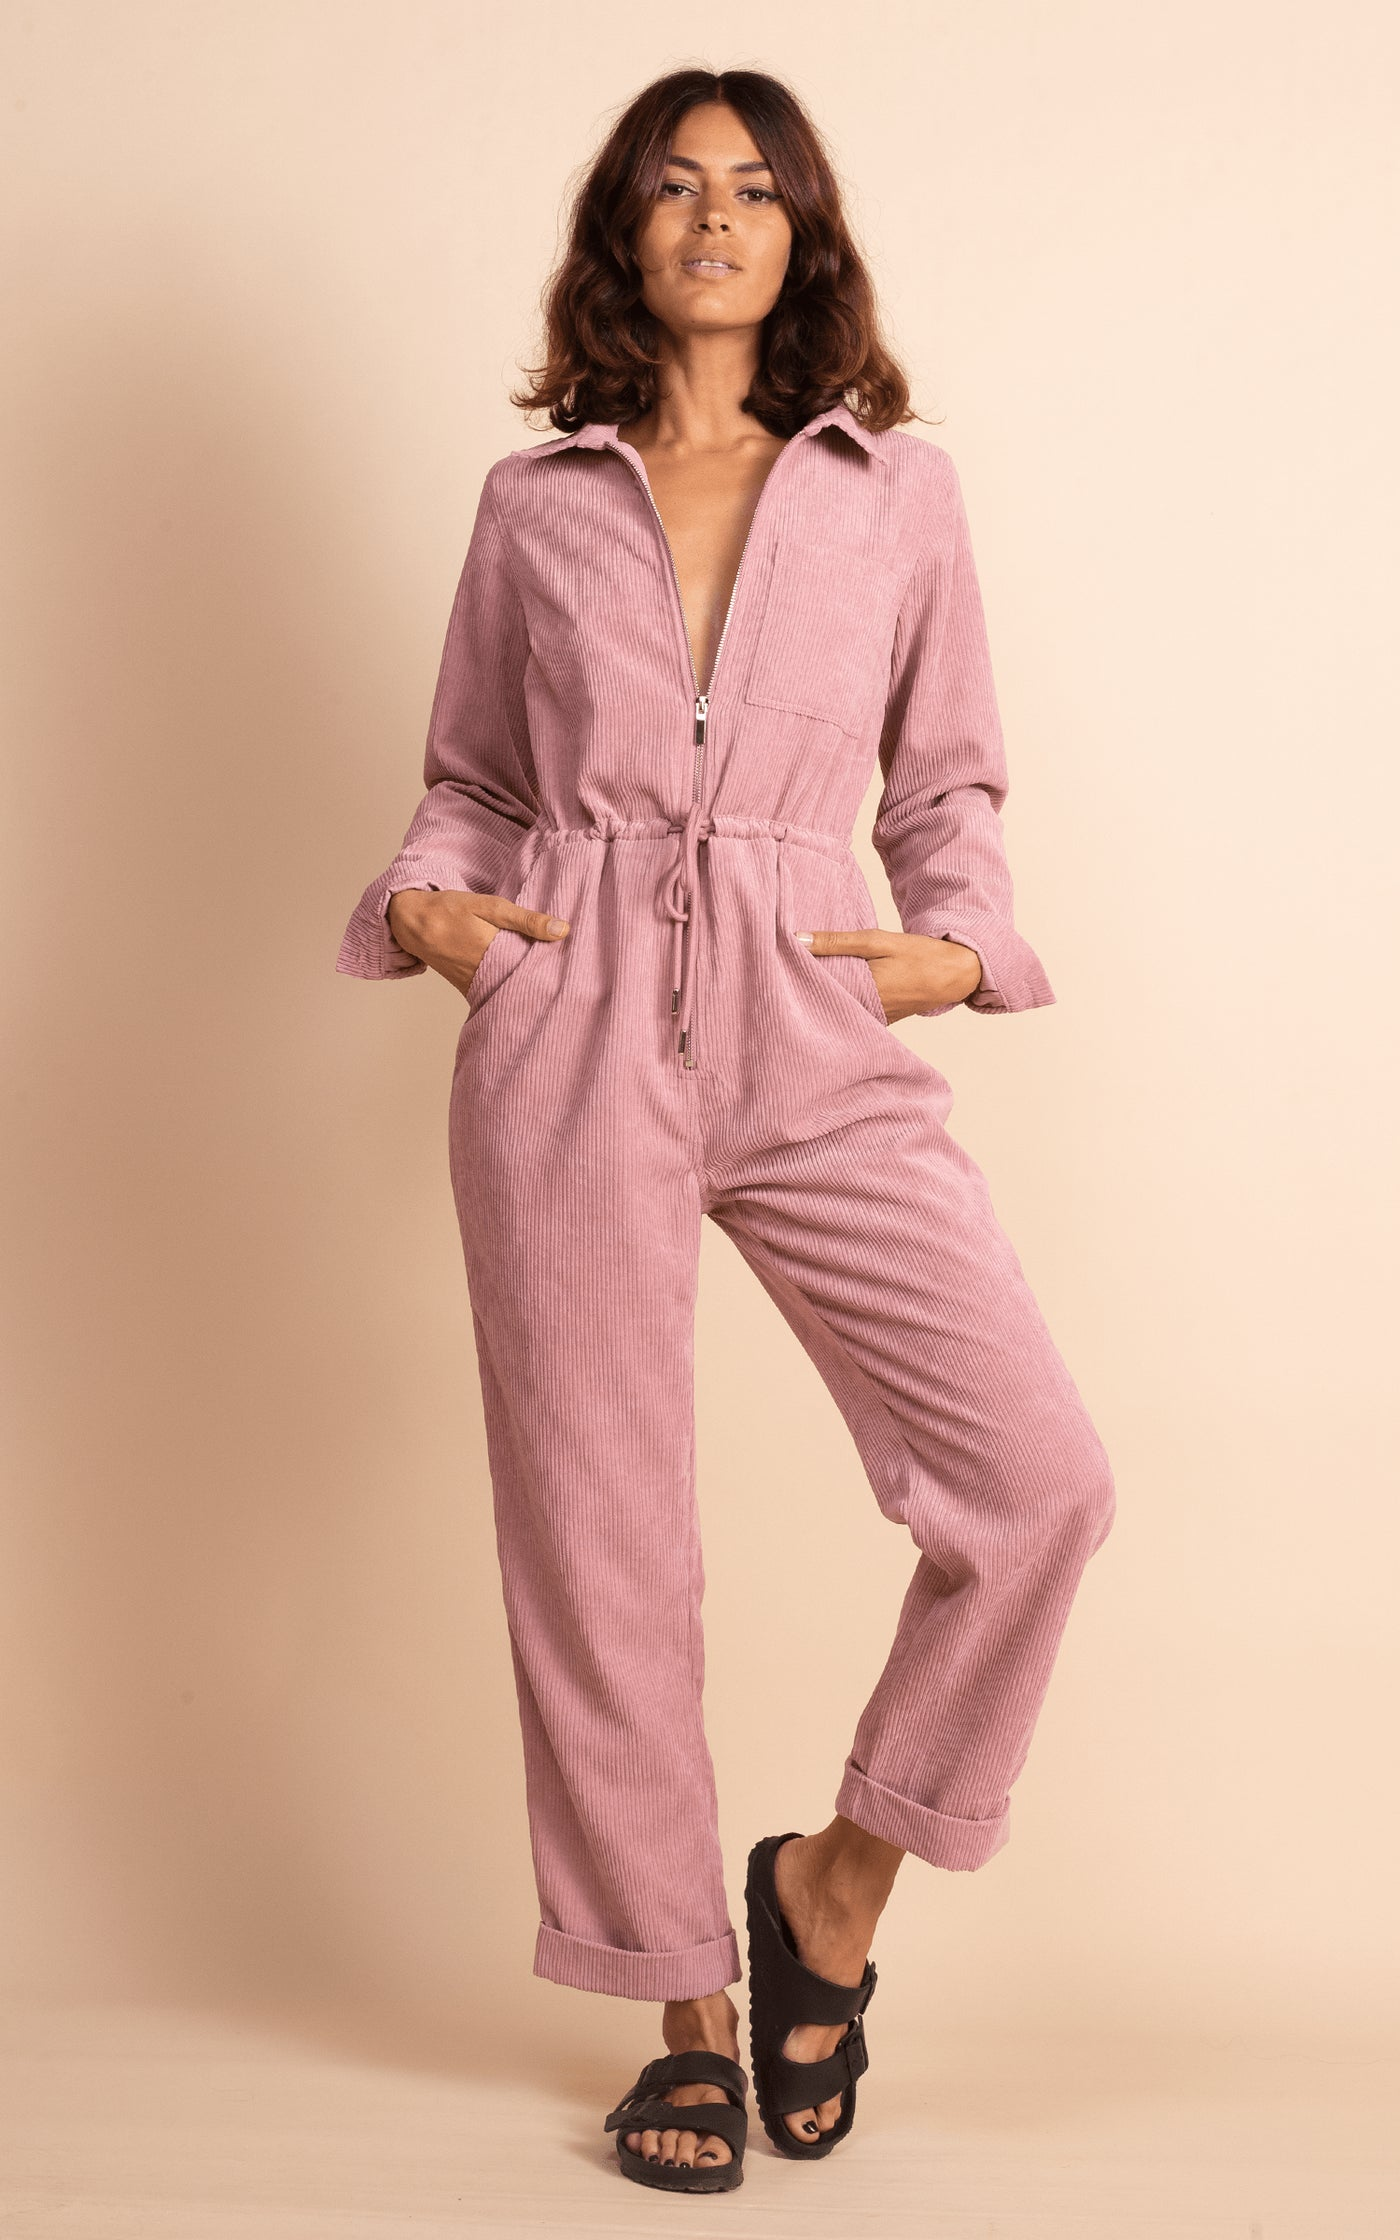 Dancing Leopard model faces forwards wearing Blaze Boilersuit in Rose Pink with sandals